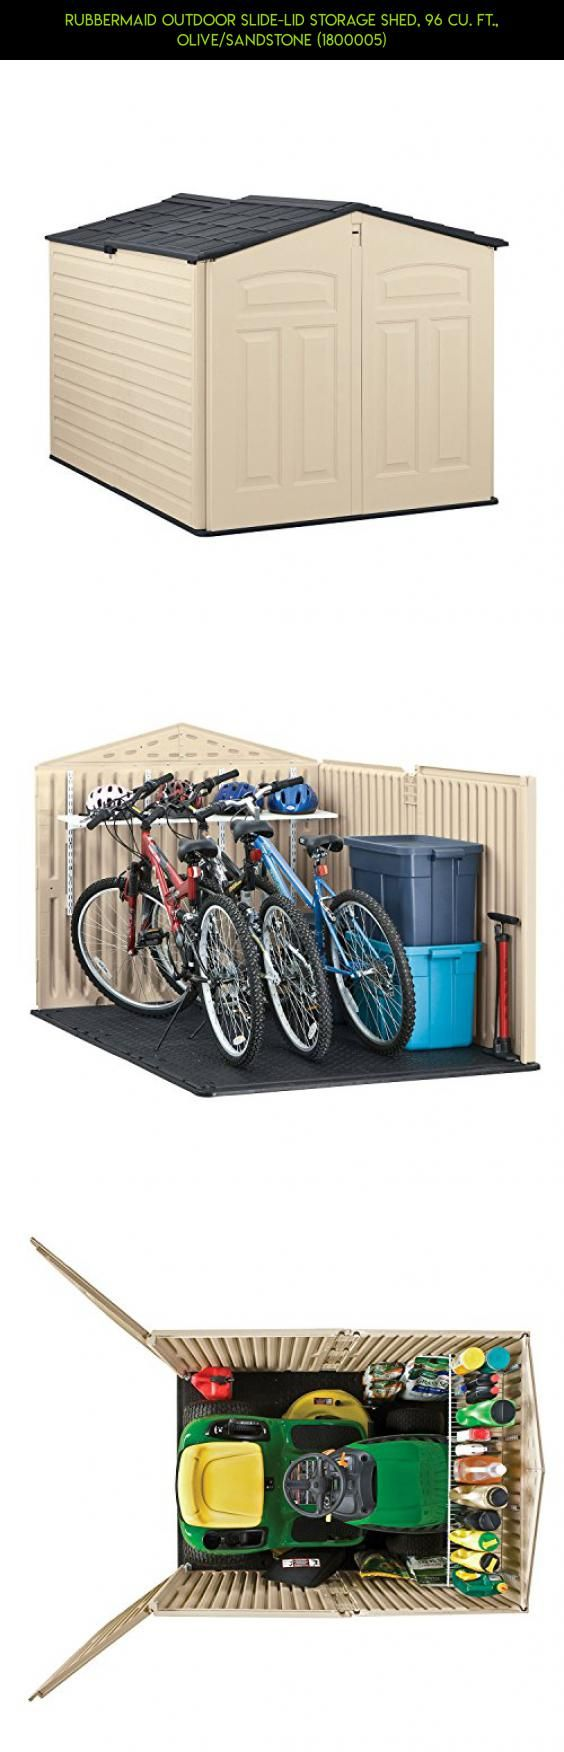 Rubbermaid Outdoor Slide-Lid Storage Shed, 96 cu. ft., Olive/Sandstone (1800005) #parts #drone #technology #kit #m #products #camera #tech #racing #storage #gadgets #fpv #shopping #plans